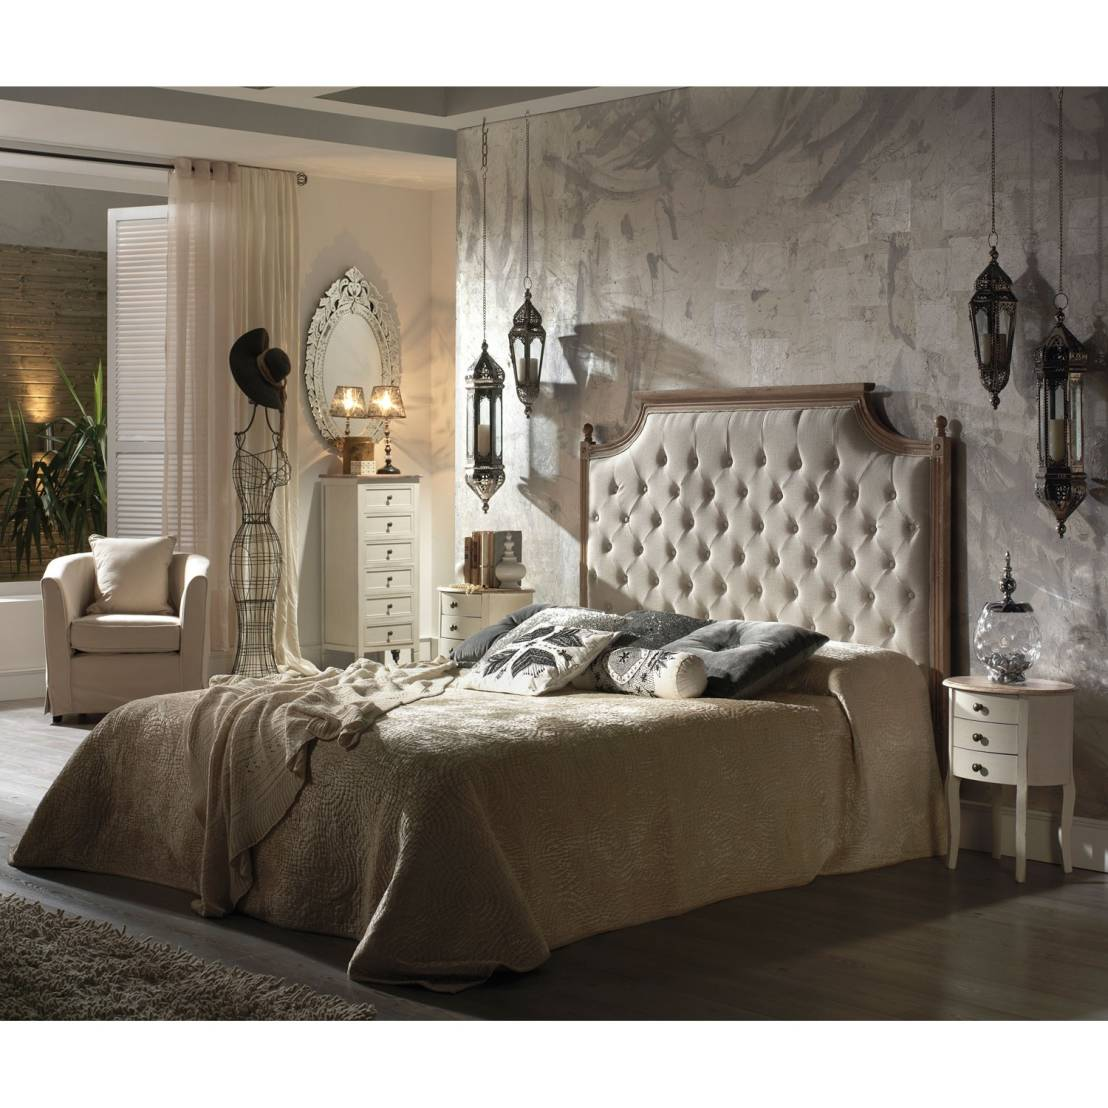 Muebles La Toskana 8 Breathtaking Bedroom Designs